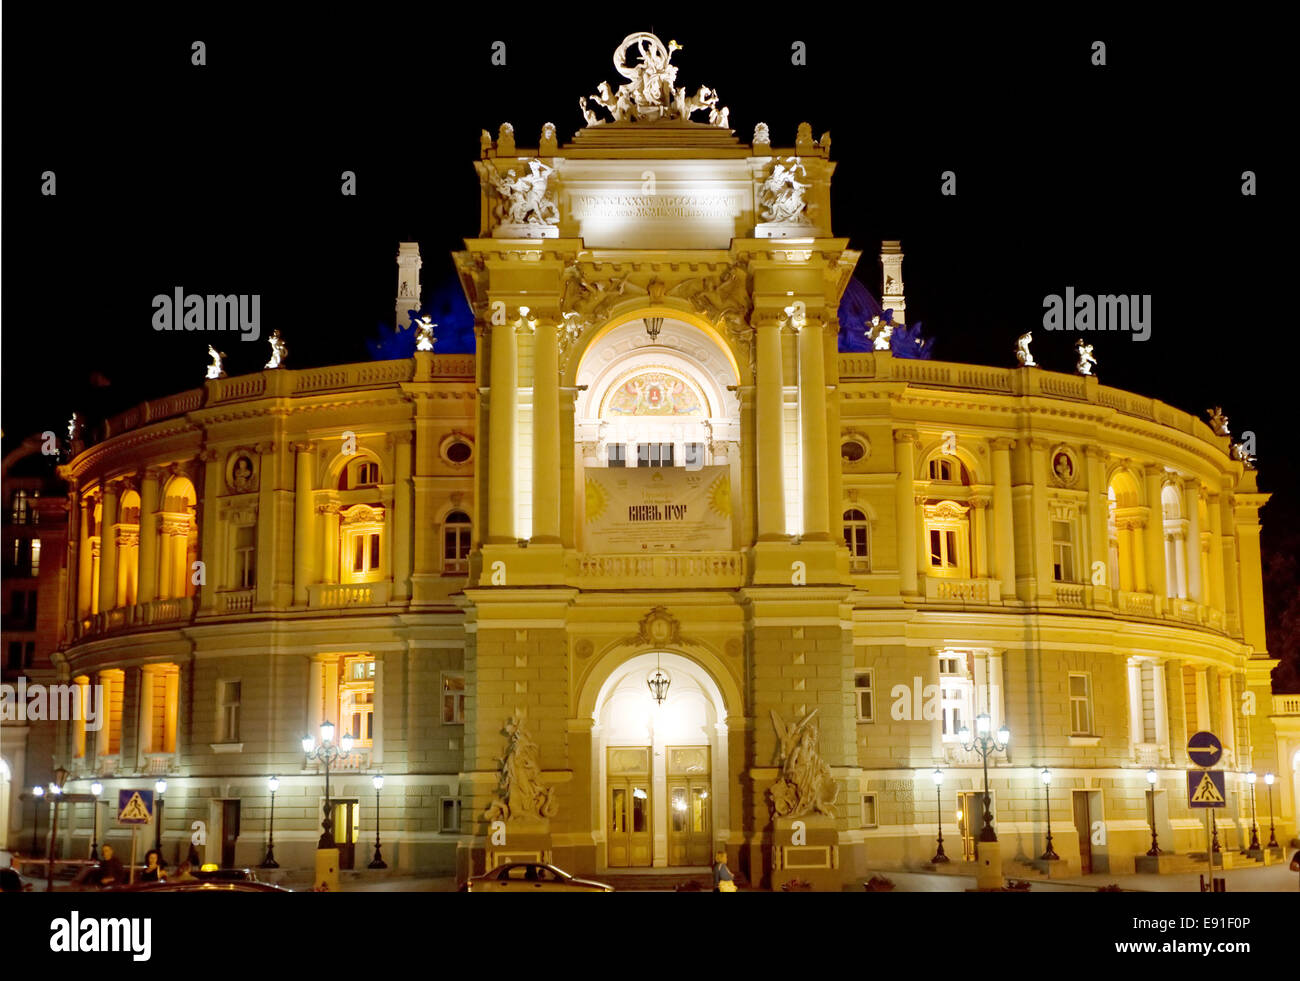 Odessa Opera and Ballet Theater - Stock Image